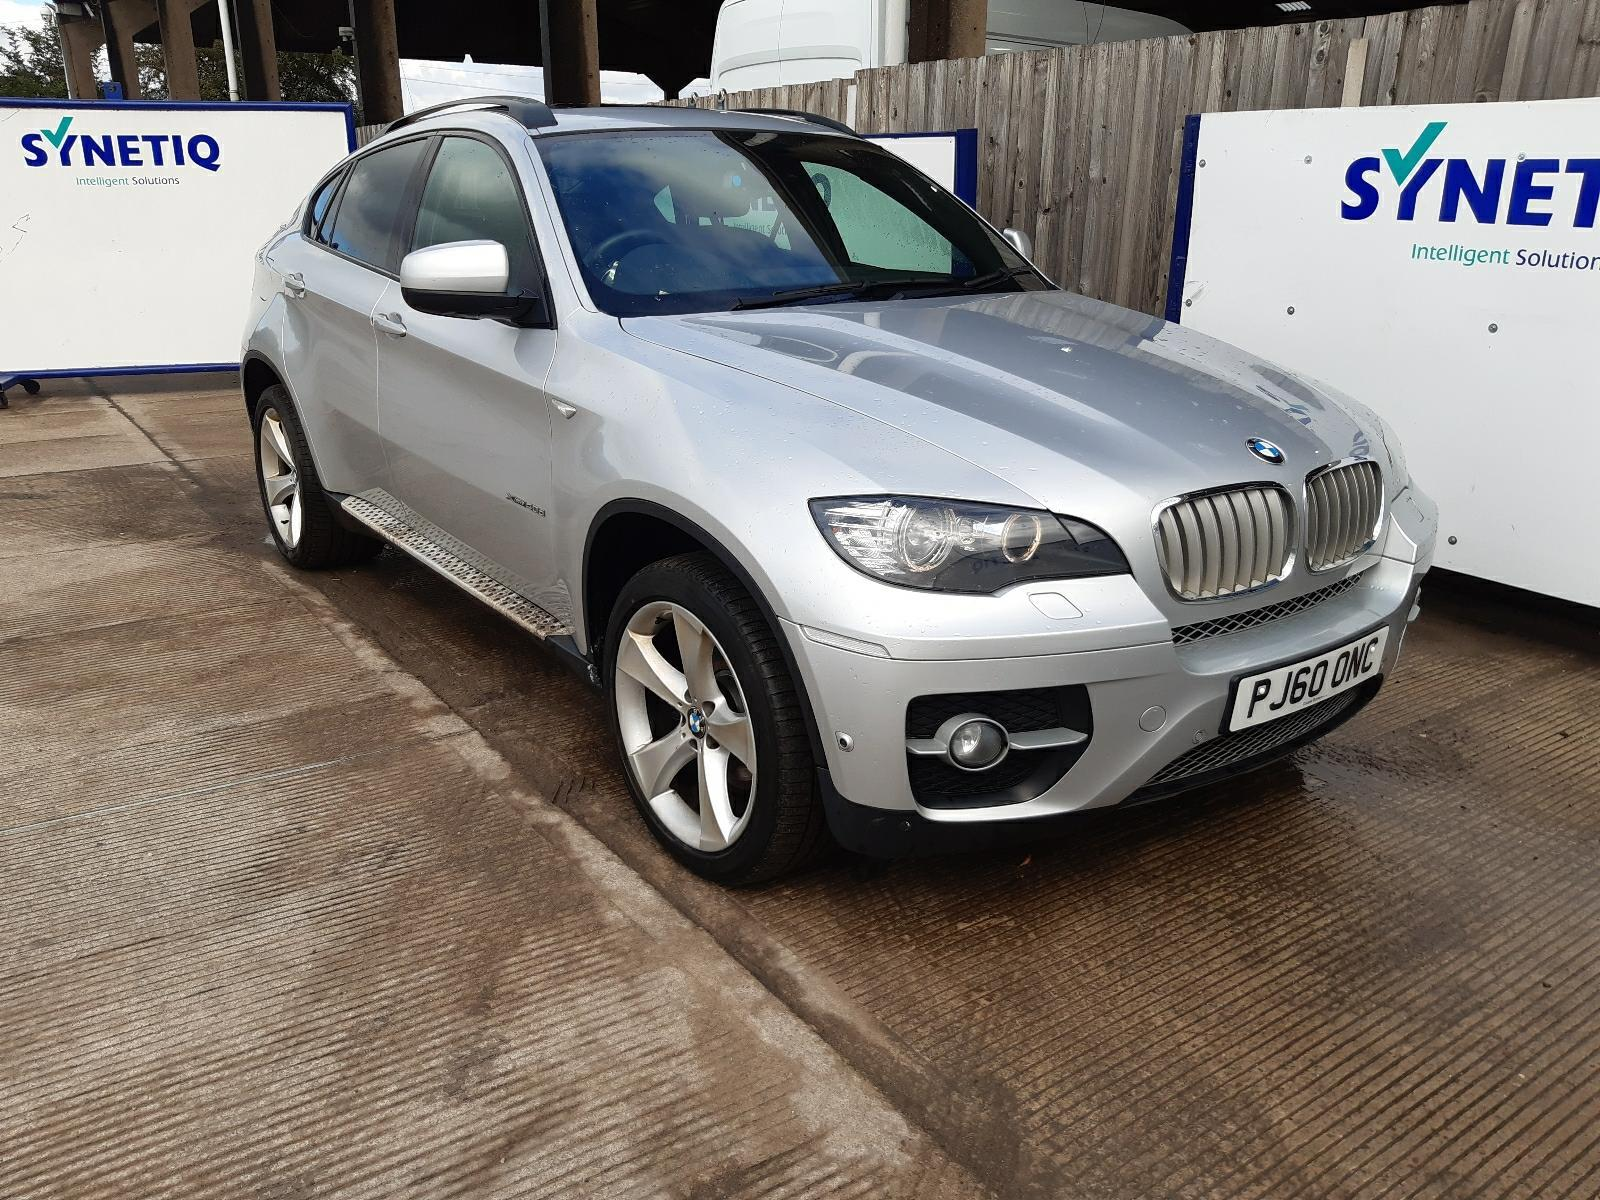 2010 BMW X6 XDRIVE40D 2993cc TURBO DIESEL AUTOMATIC 4 DOOR COUPE